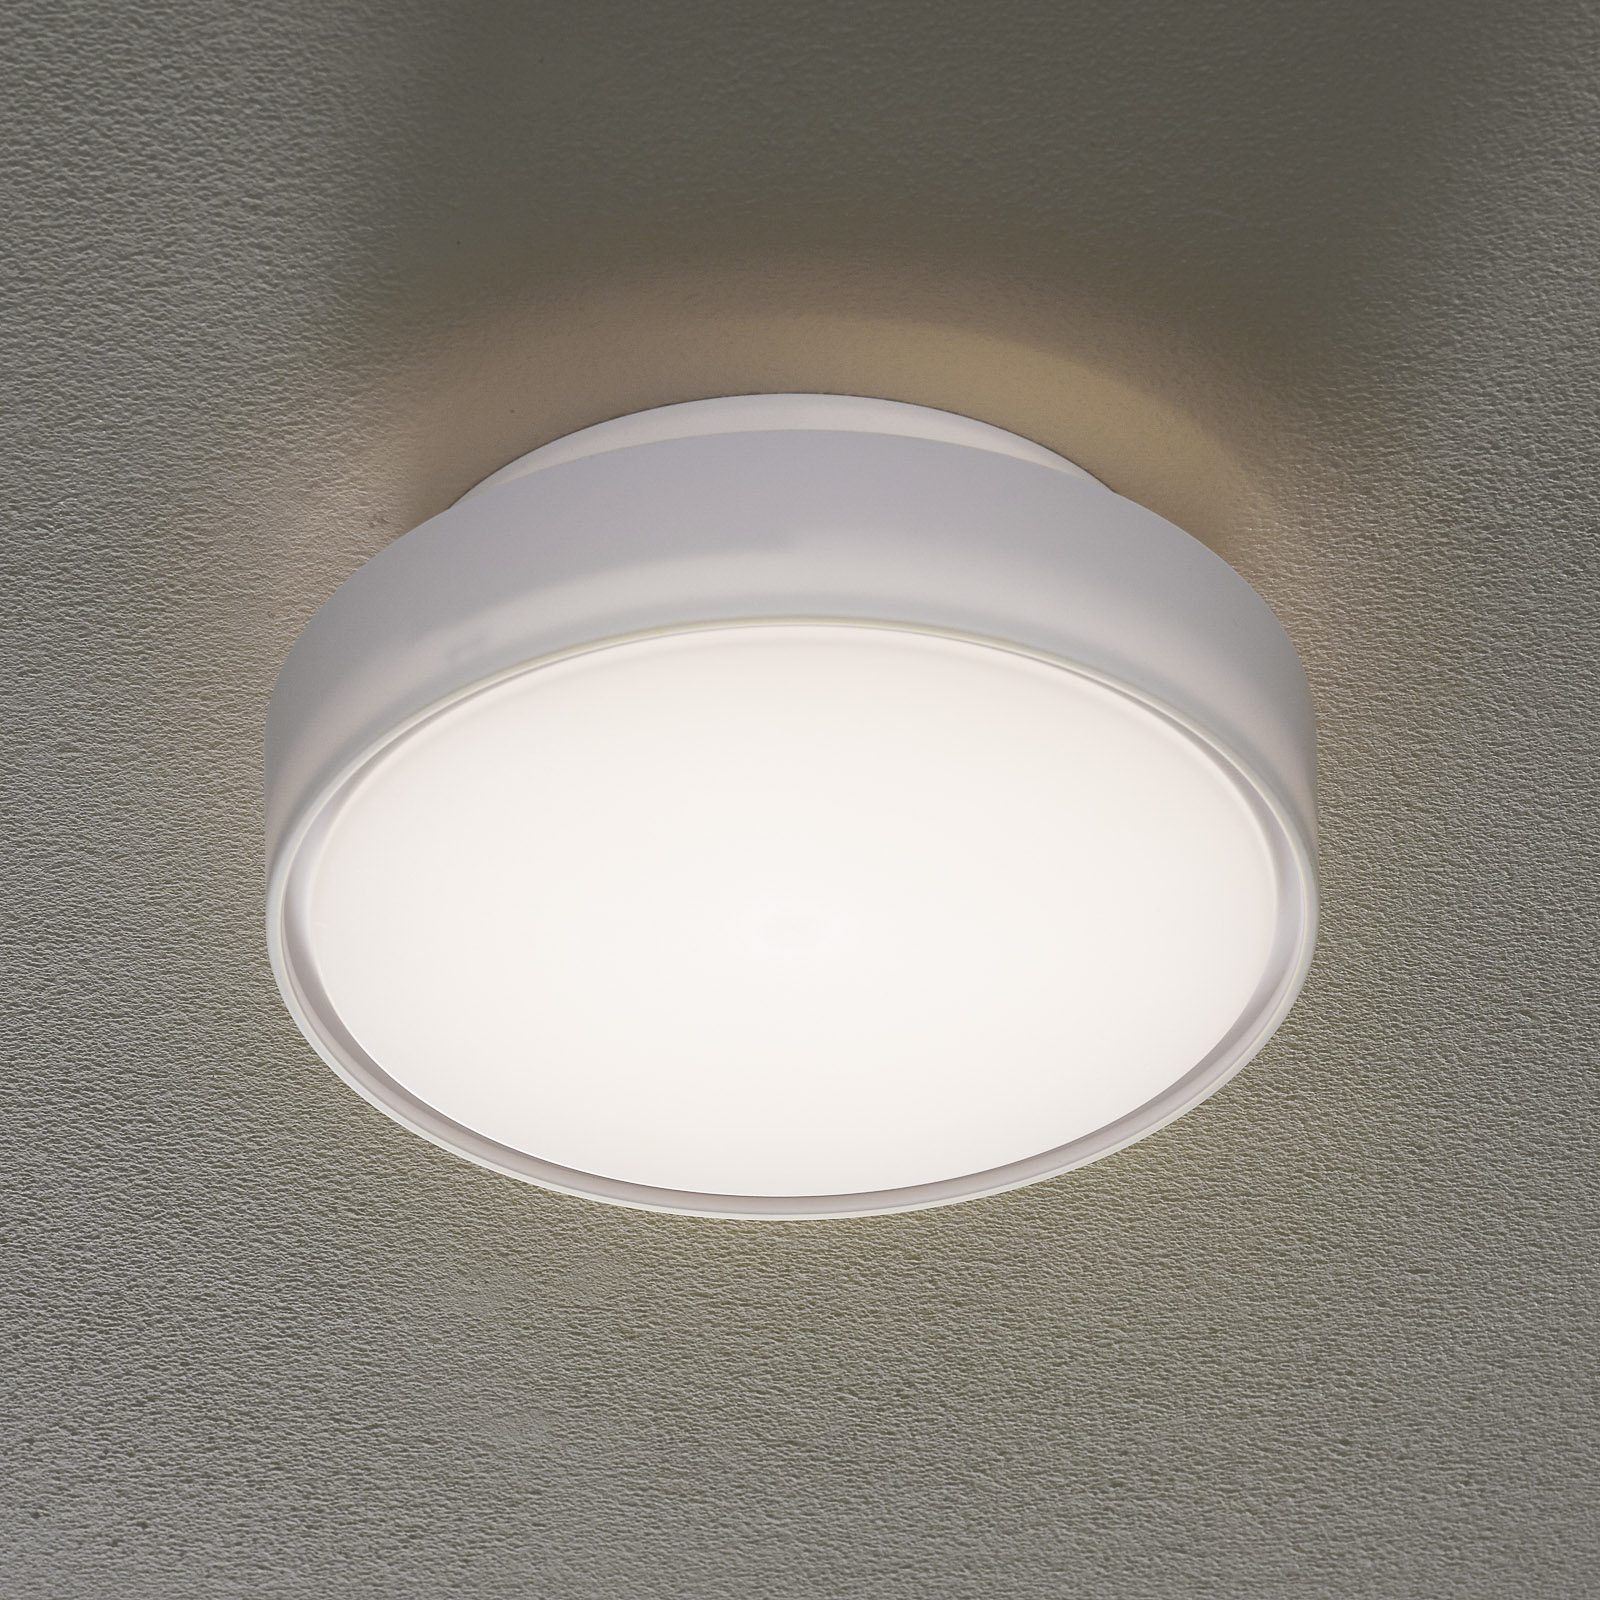 Lampa sufitowa LED Hatton IP65 25 cm